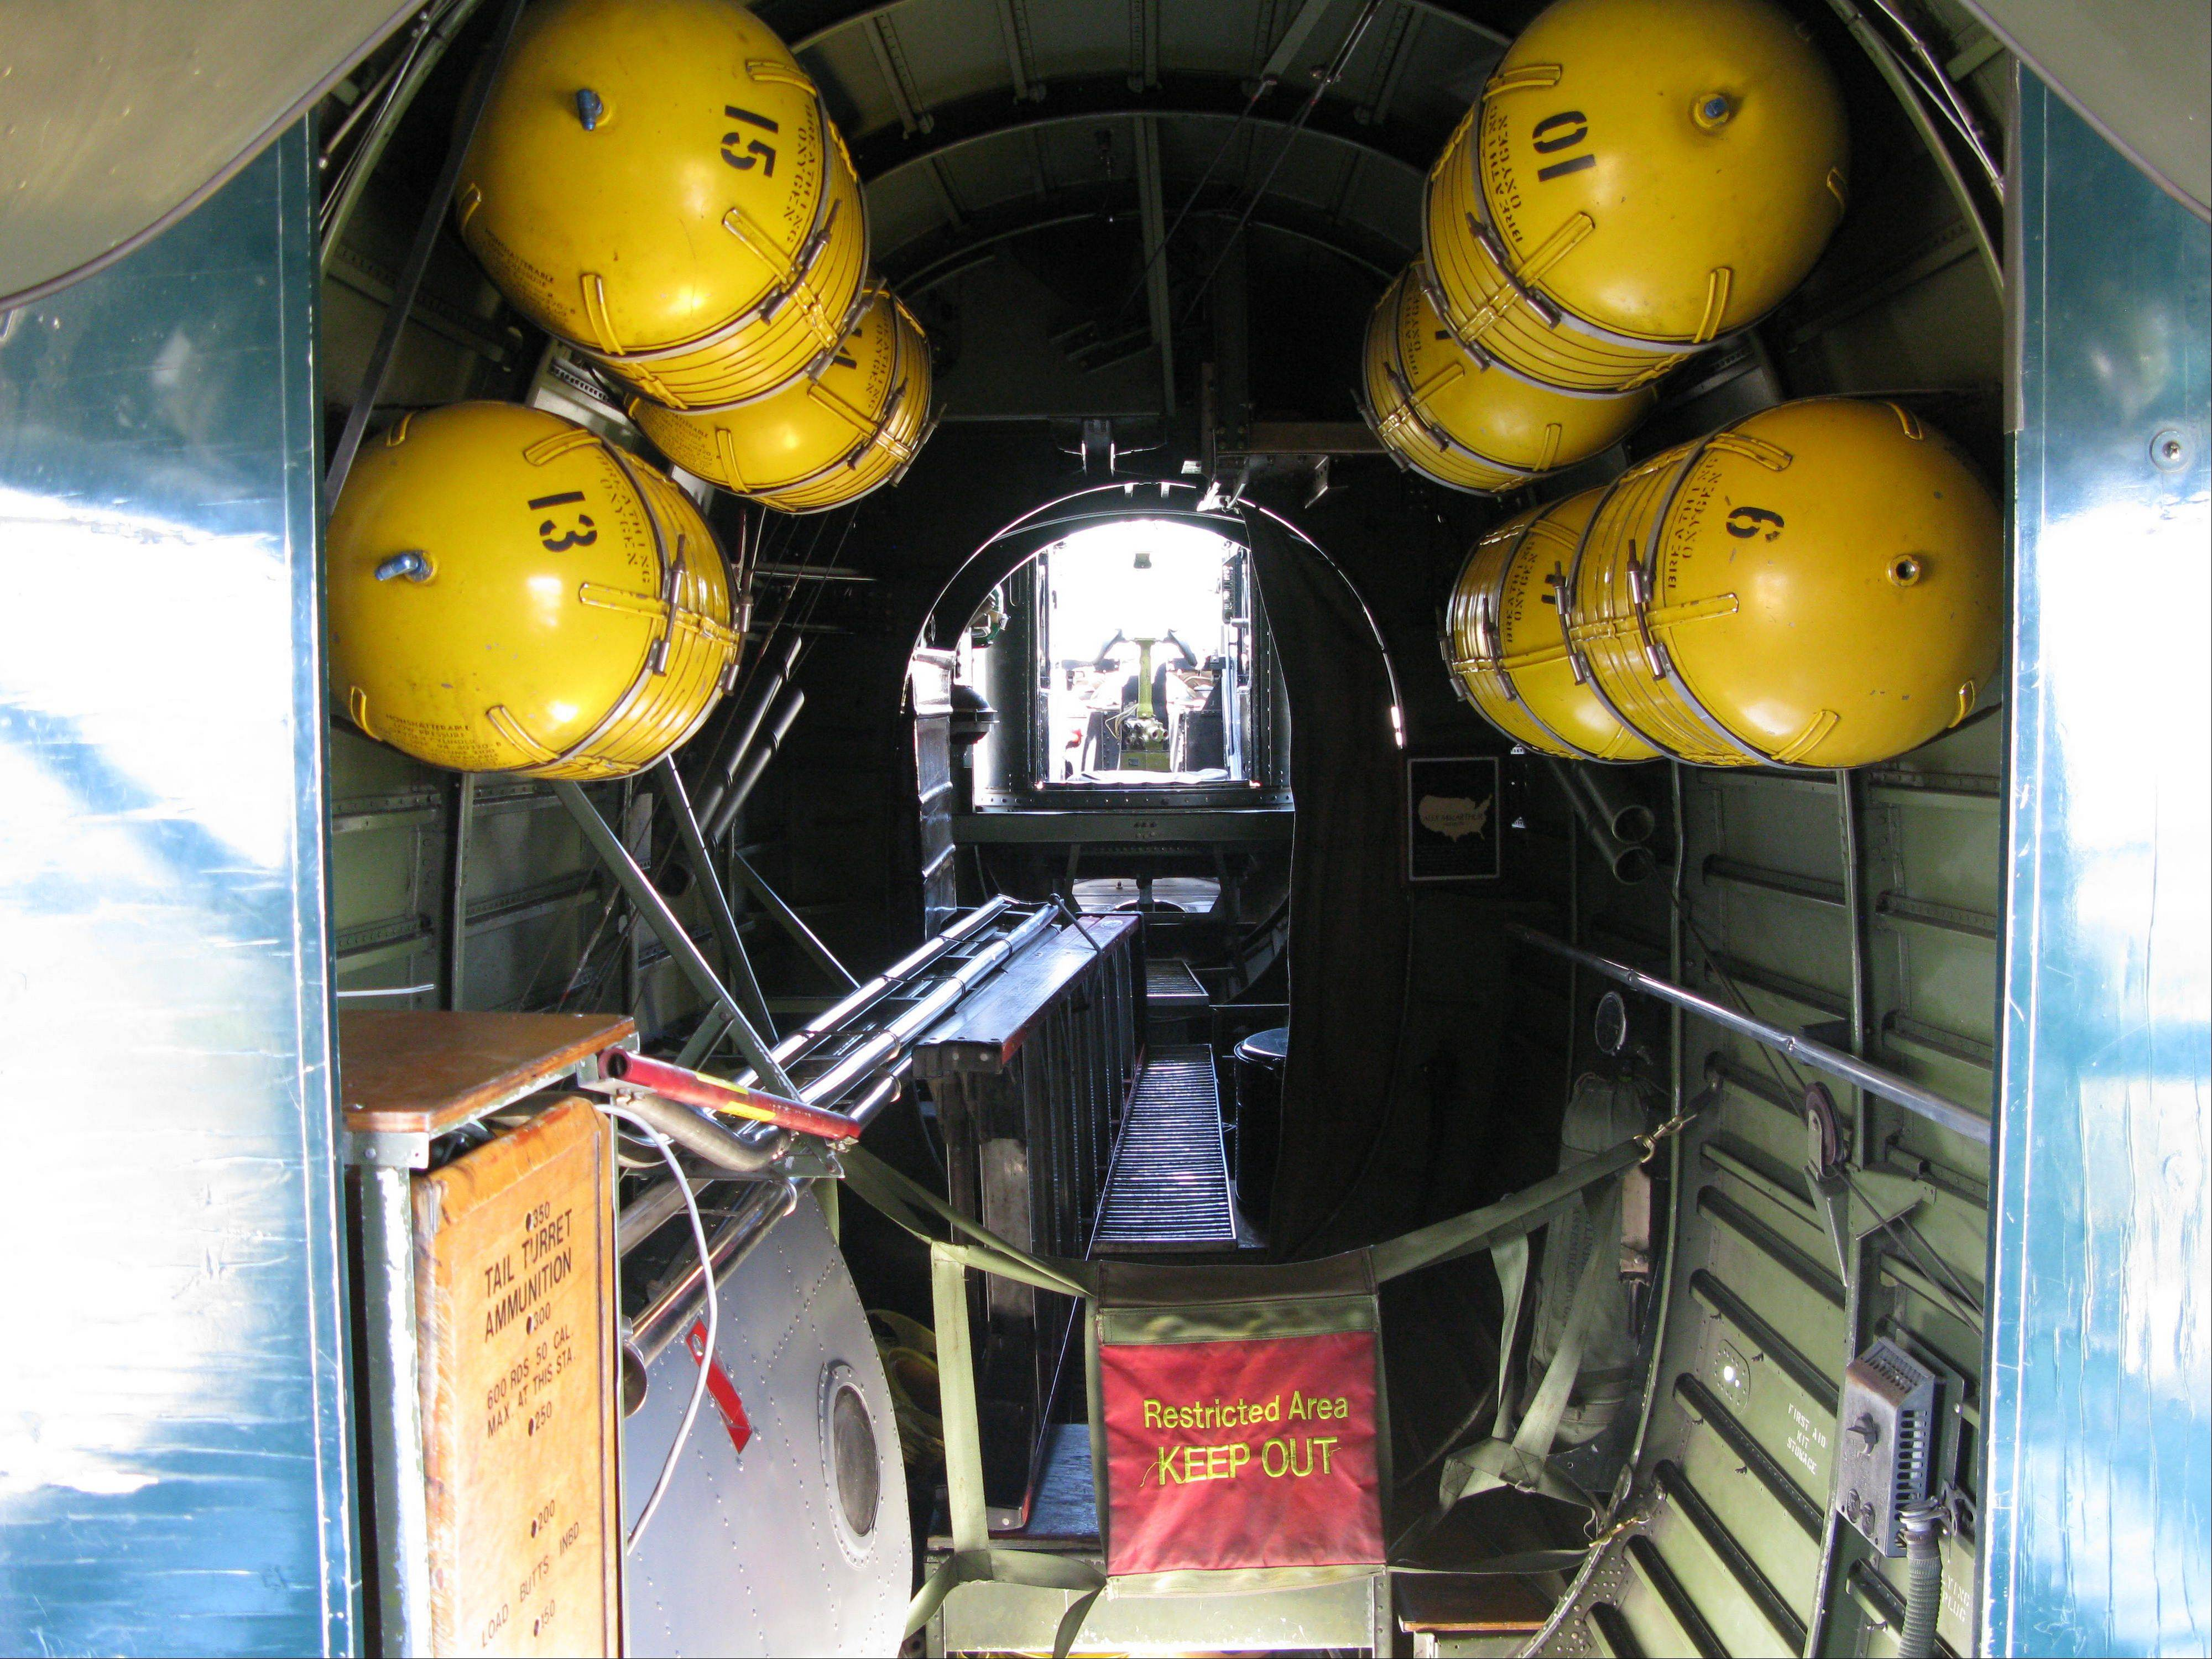 The bomb bay inside a World War II-era B-24 bomber is part of the Wings of Freedom tour.